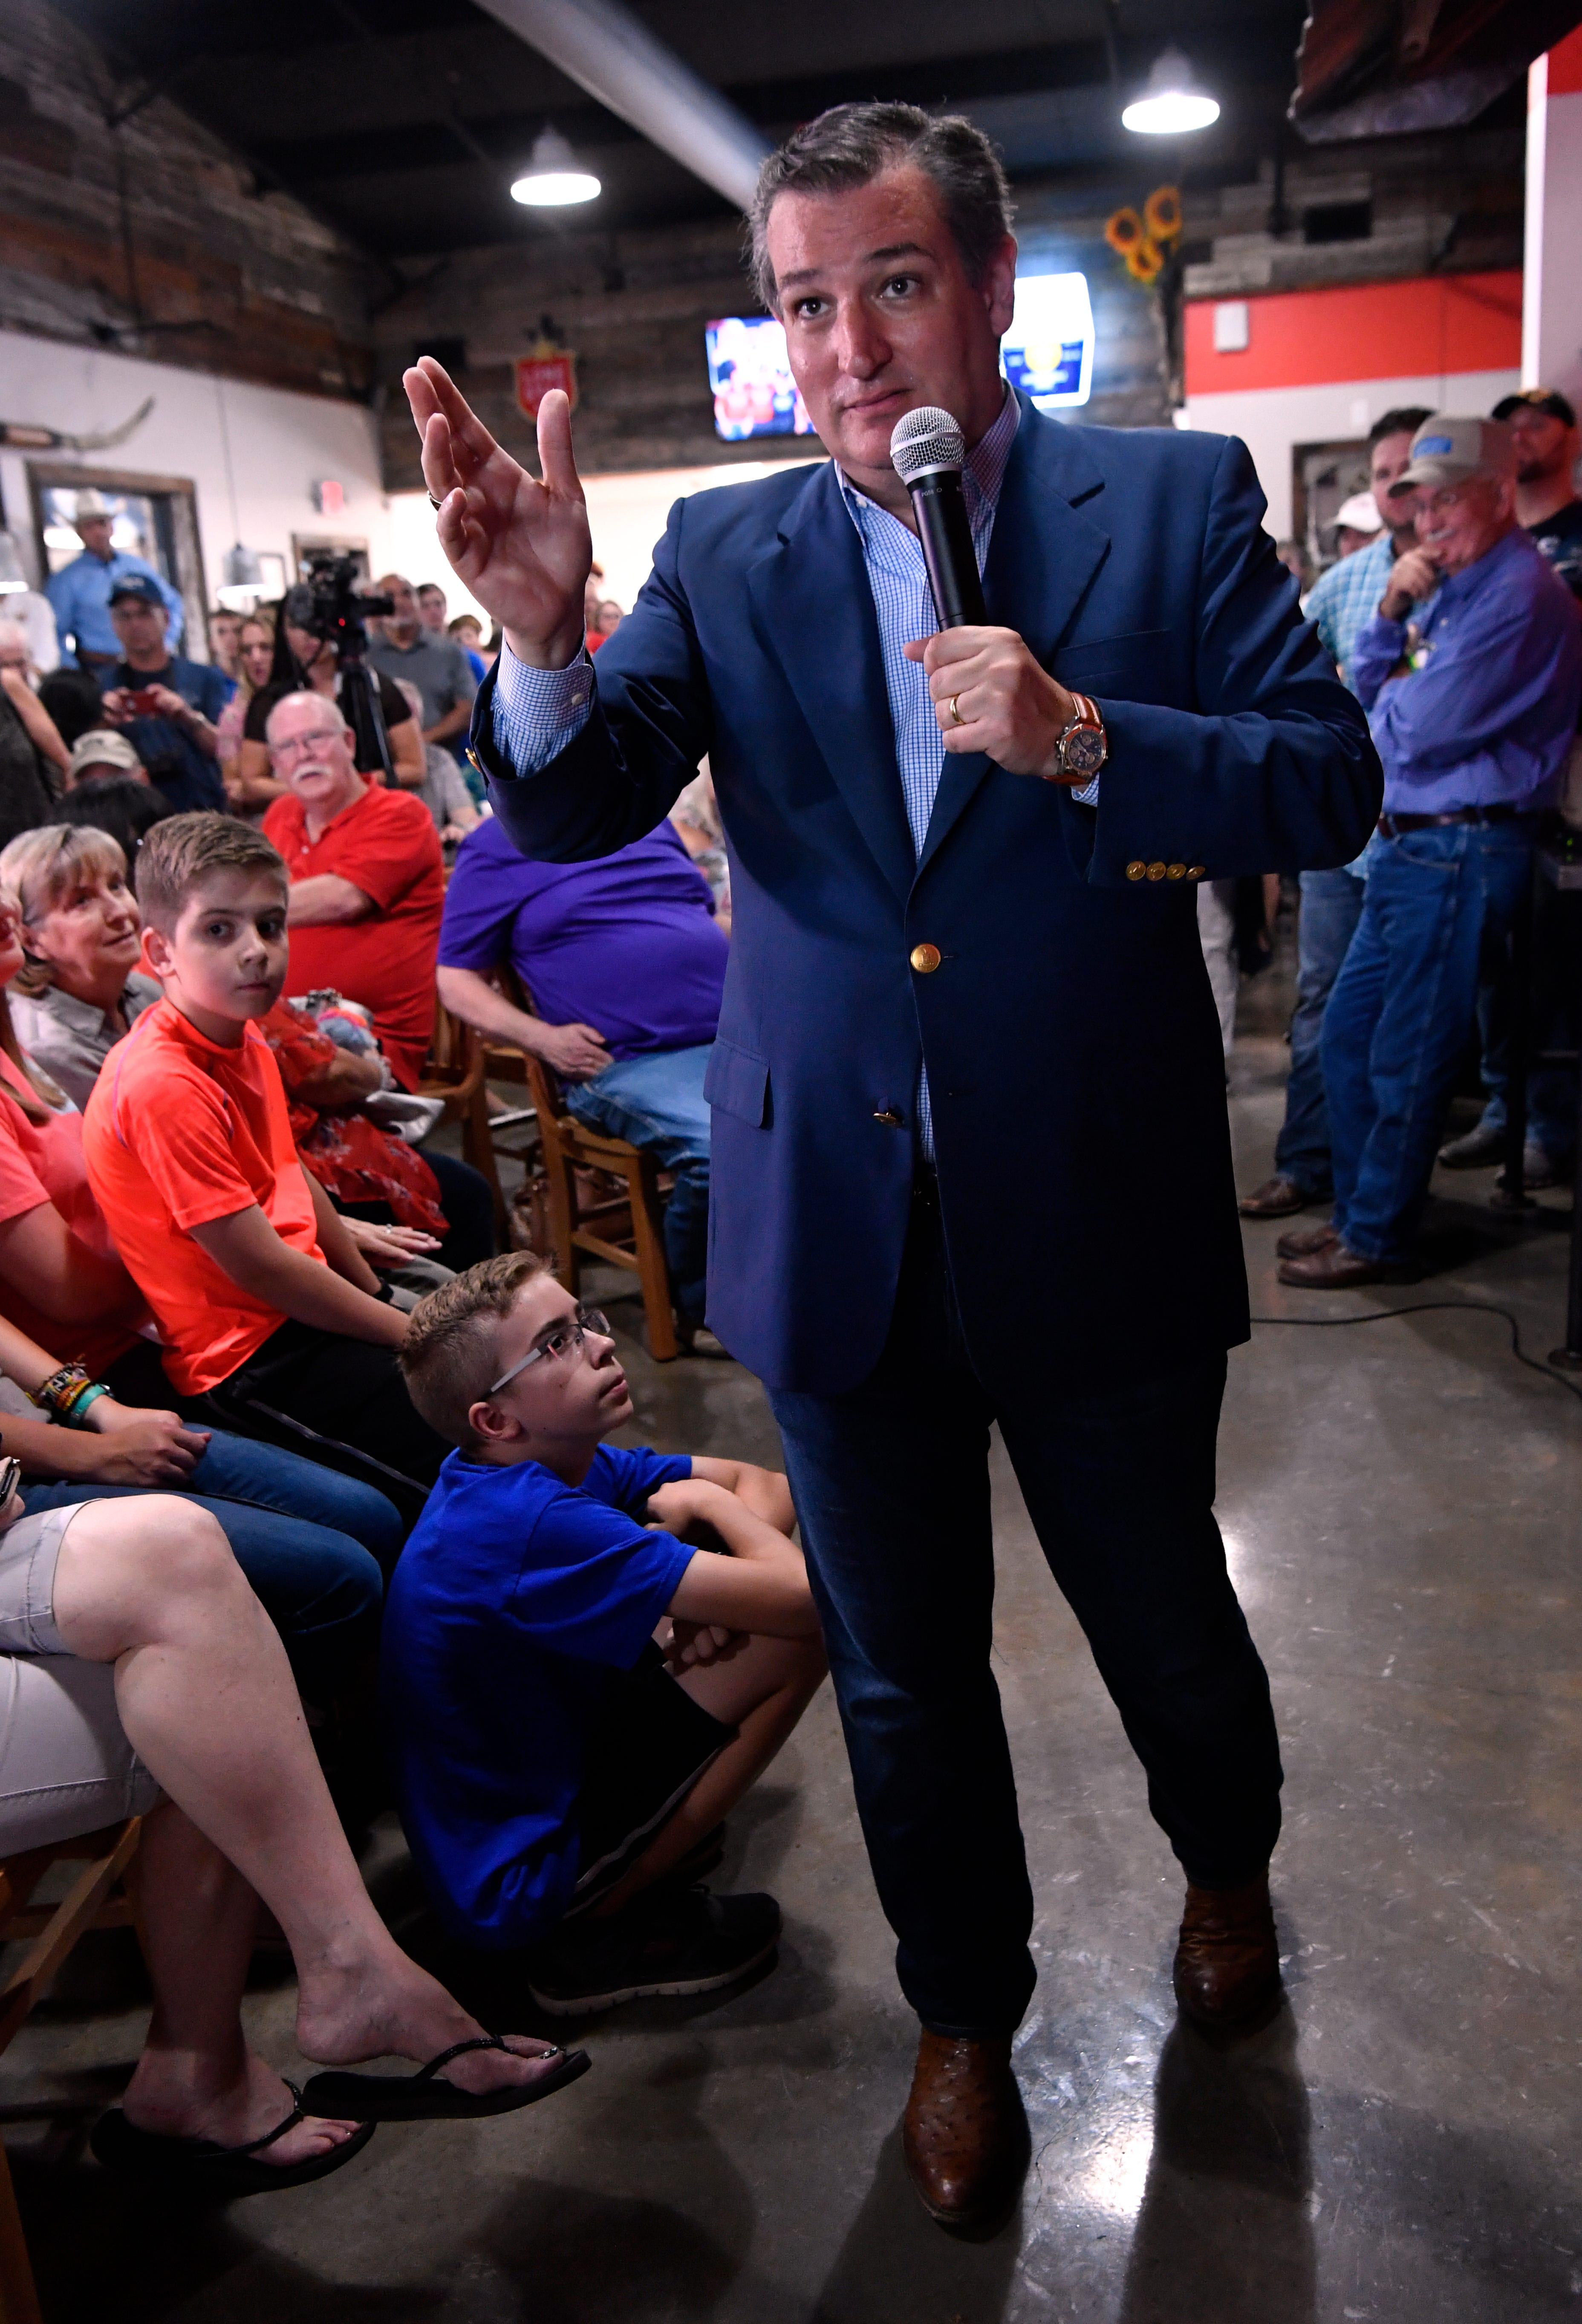 Addressing an audience member's question, U.S. Sen. Ted Cruz steps forward Thursday, Aug. 30, 2018, at Betty Rose's Little Brisket on Catclaw Drive. Over 200 packed the restaurant's indoor dining room.